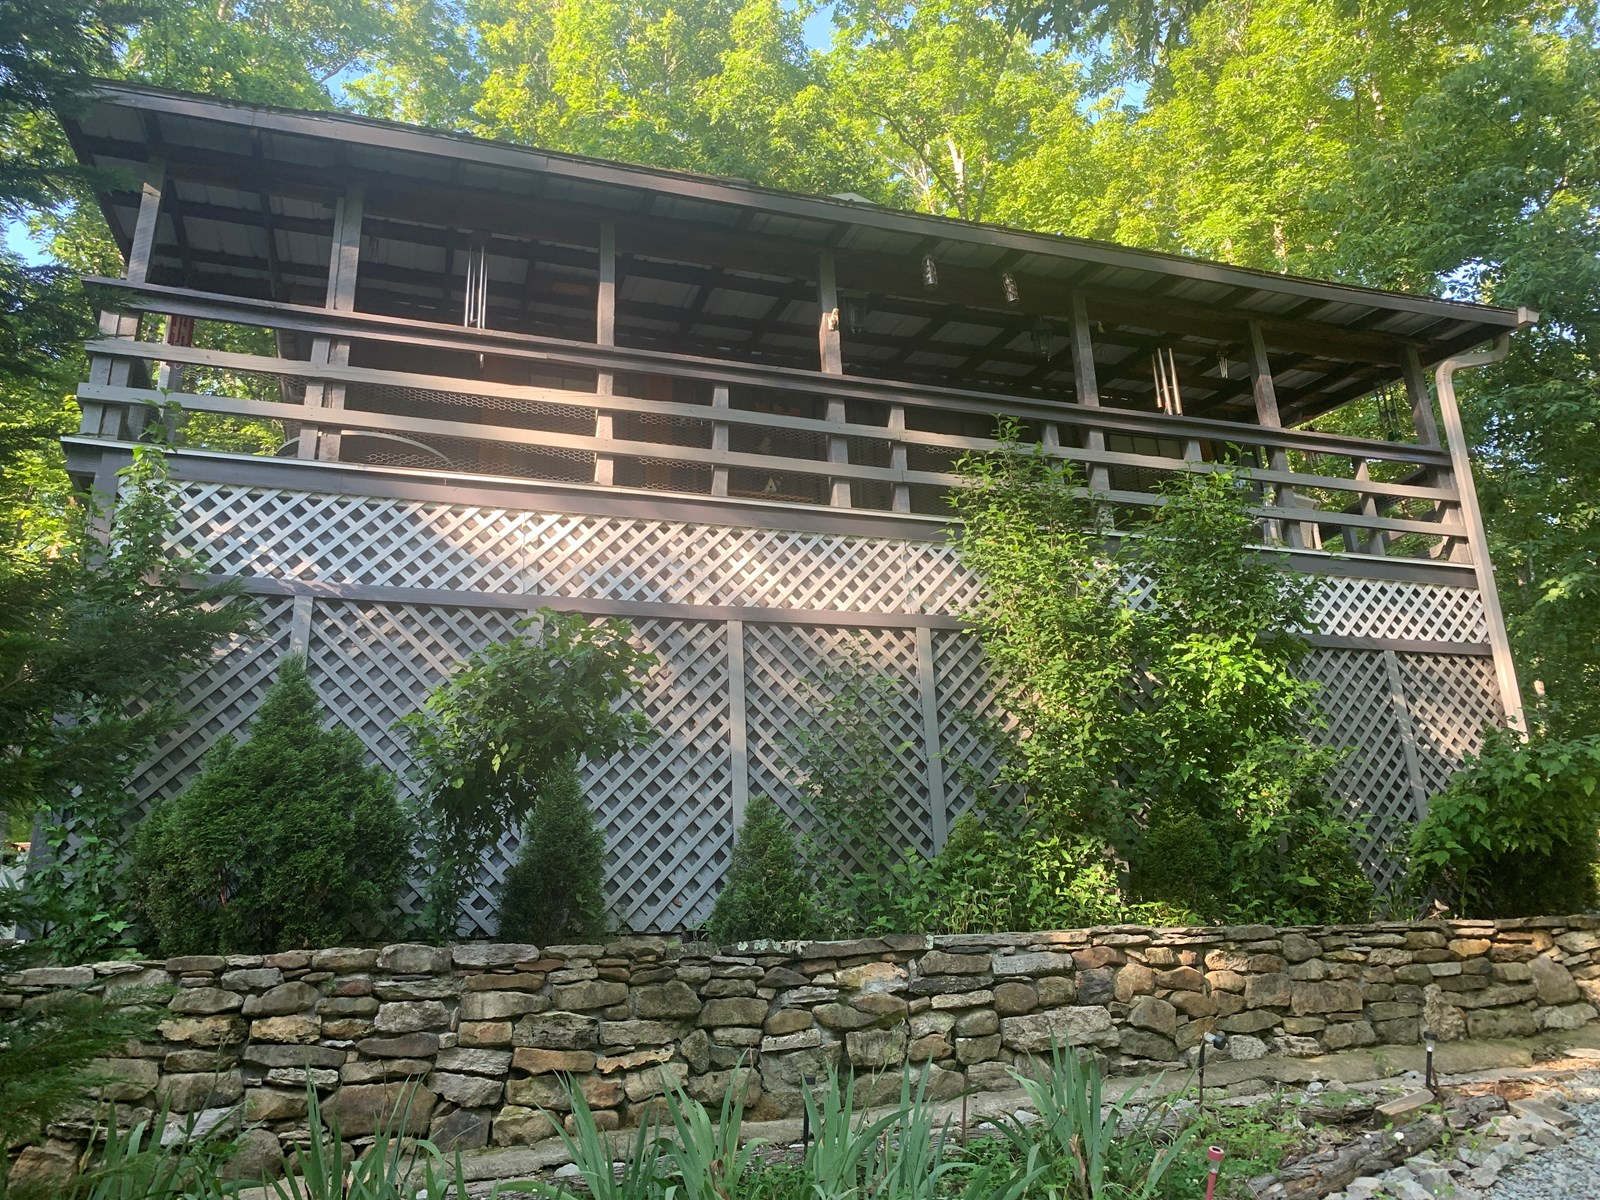 Cabin for sale in TN with barn, acreage, fencing, timber